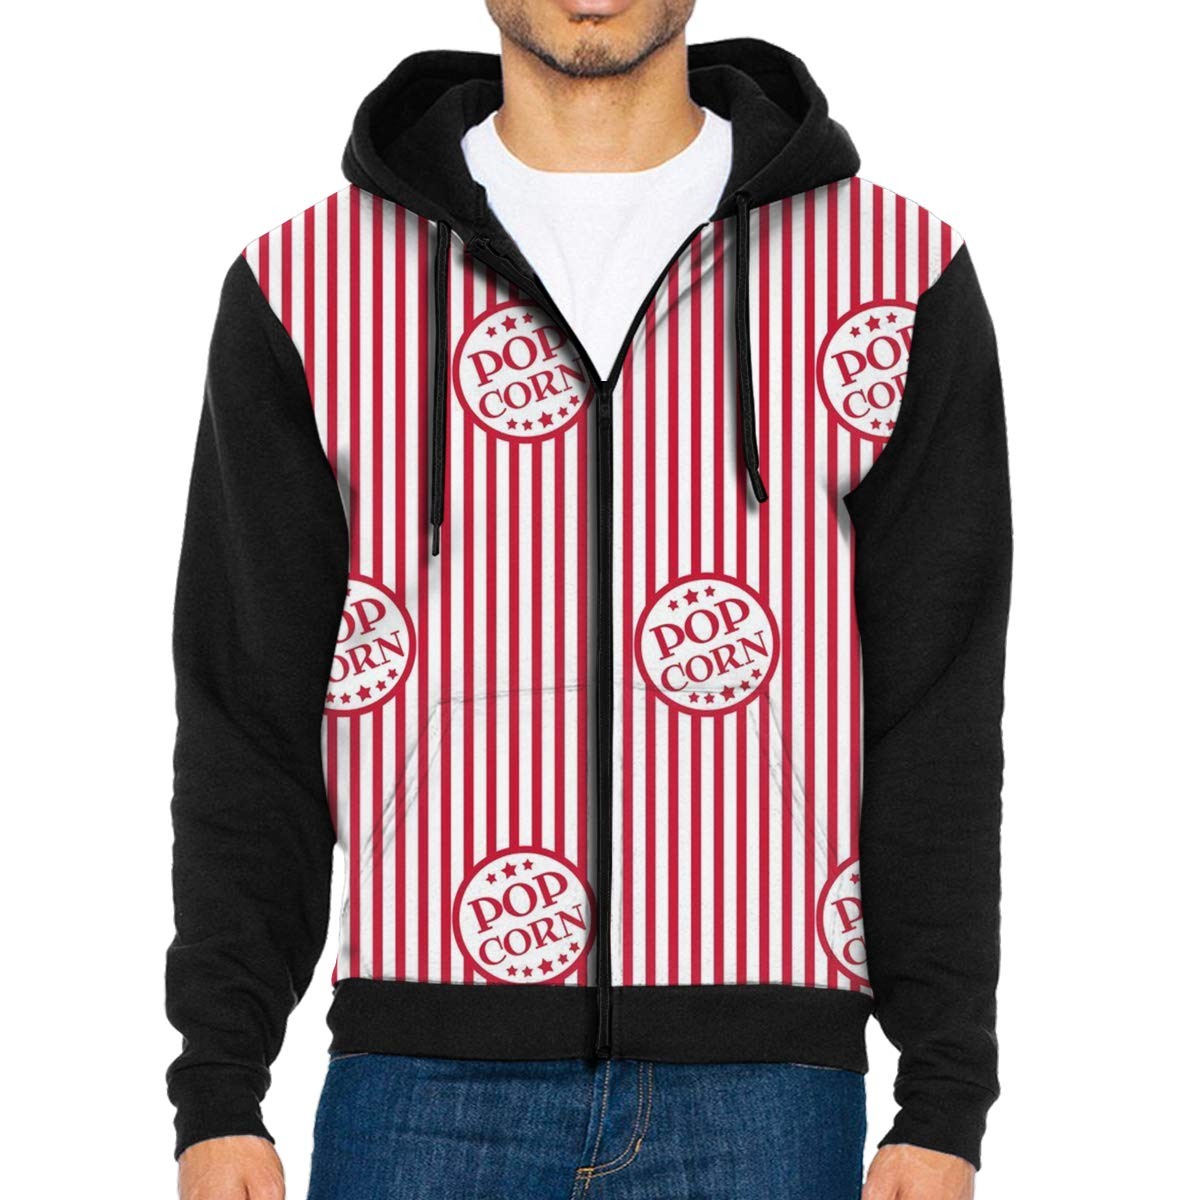 MHBGMYES Popcorn Lightweight Mans Jacket with Hood Long Sleeved Zippered Outwear